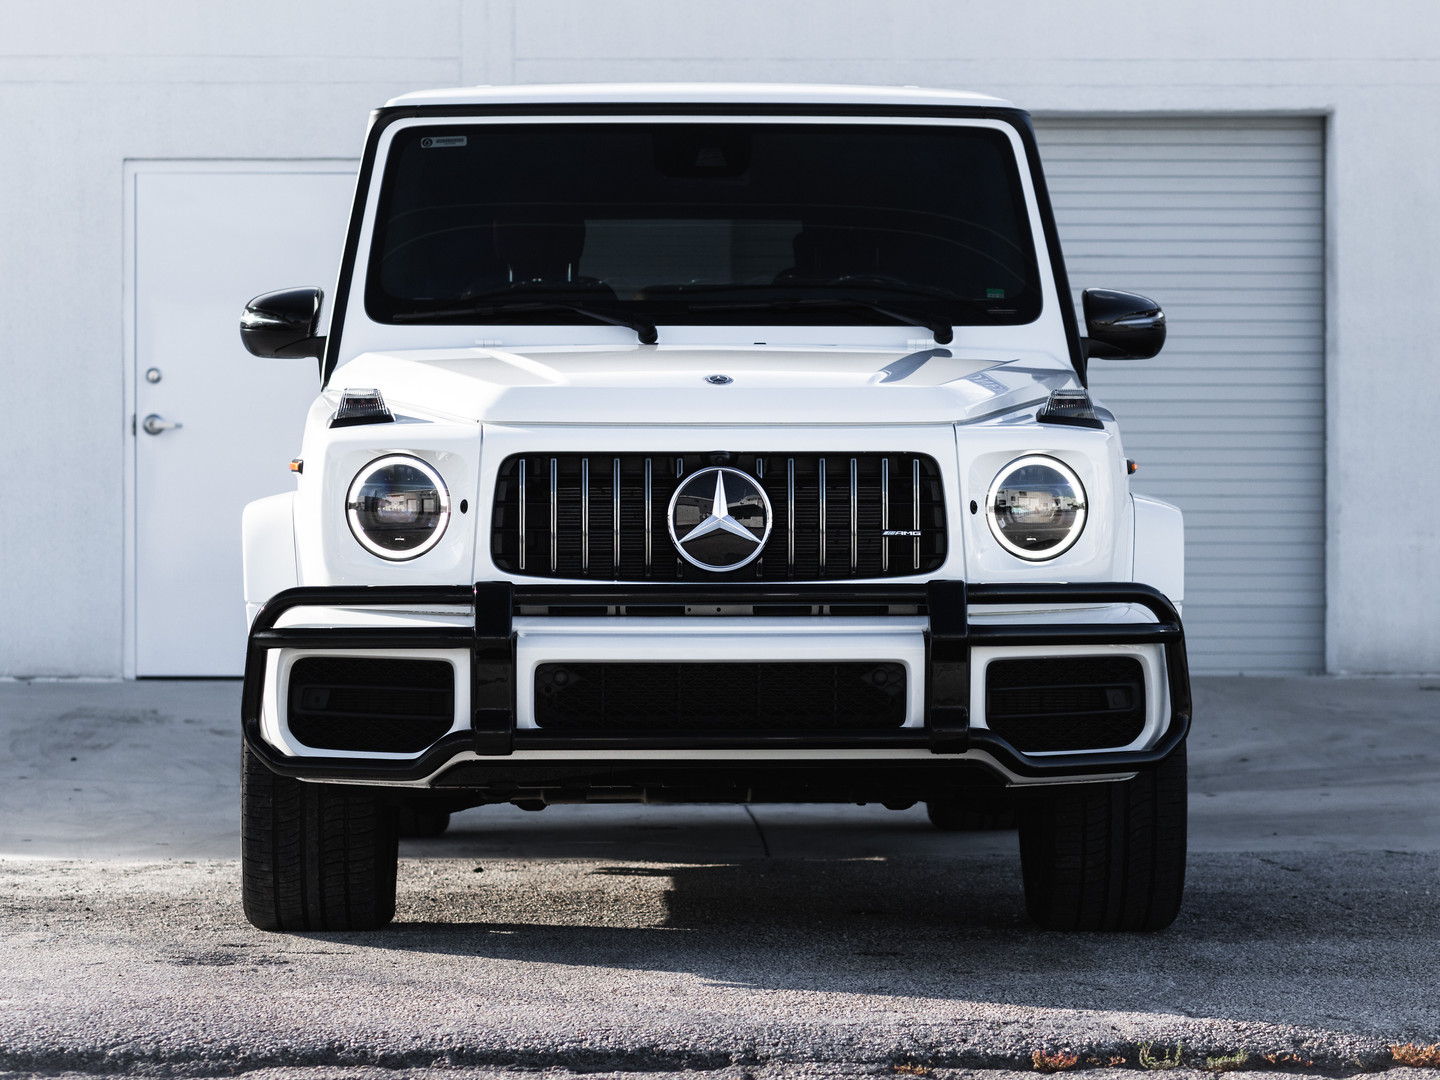 Mercedes Benz G Class Full Car Paint Protection Film Miami